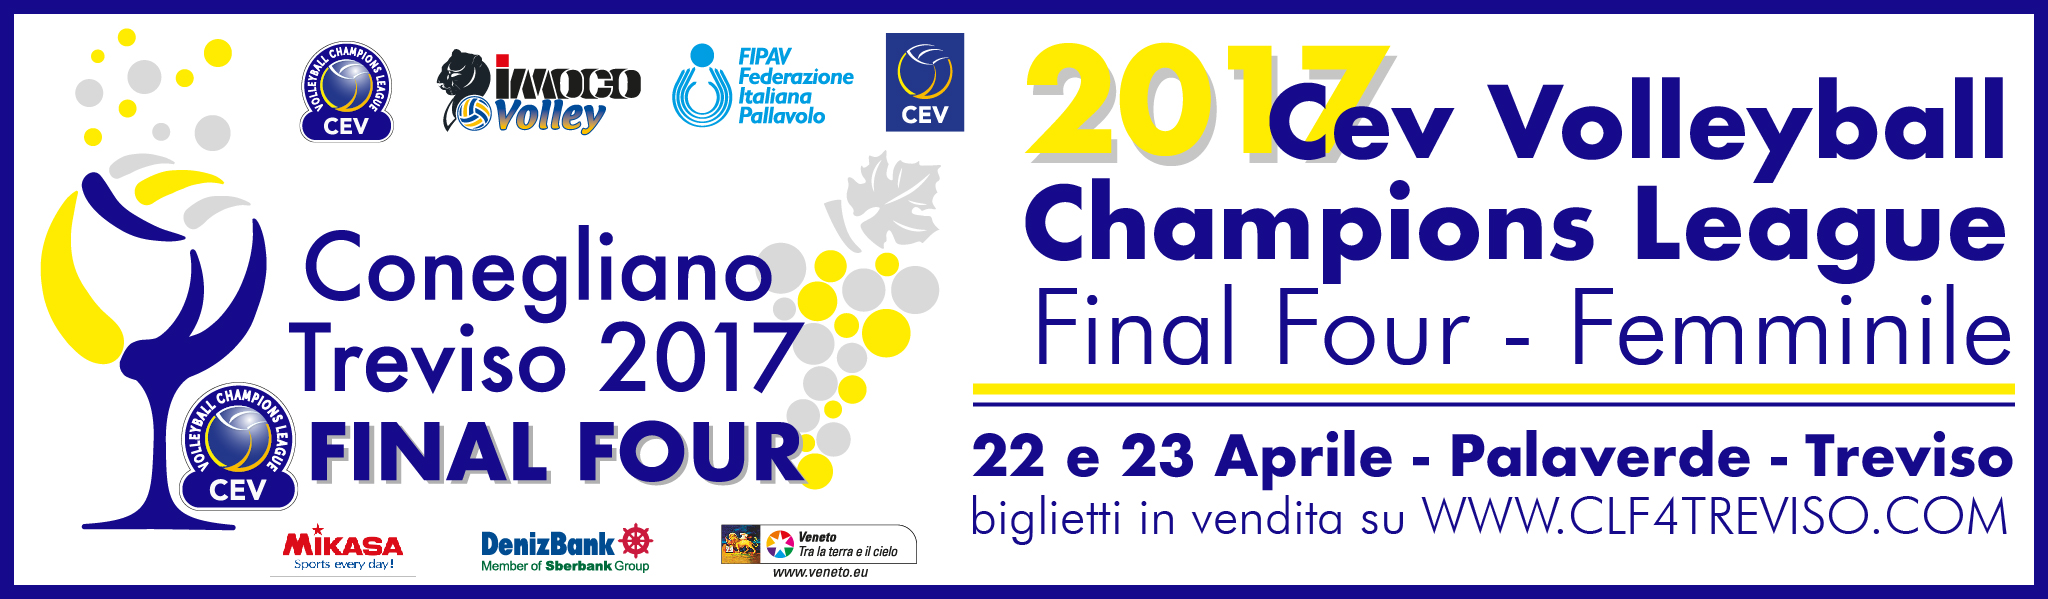 Final Four Champions League volley femminile 2017